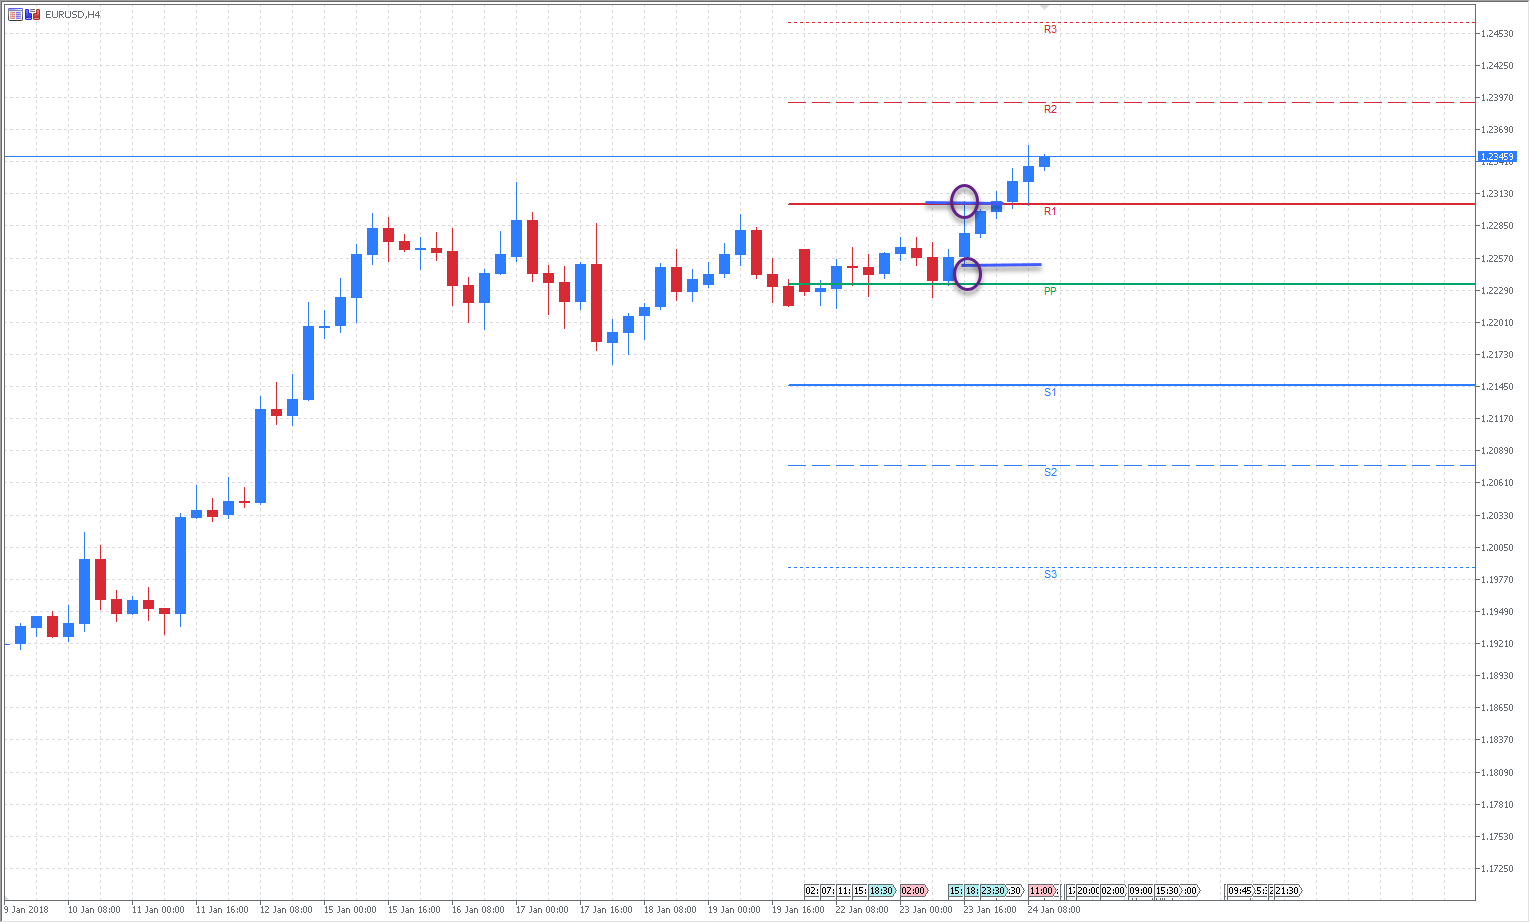 EUR/USD H4 chart, Admiral Markets MT5SE with Admiral Pivot Indicator, Jan 2018